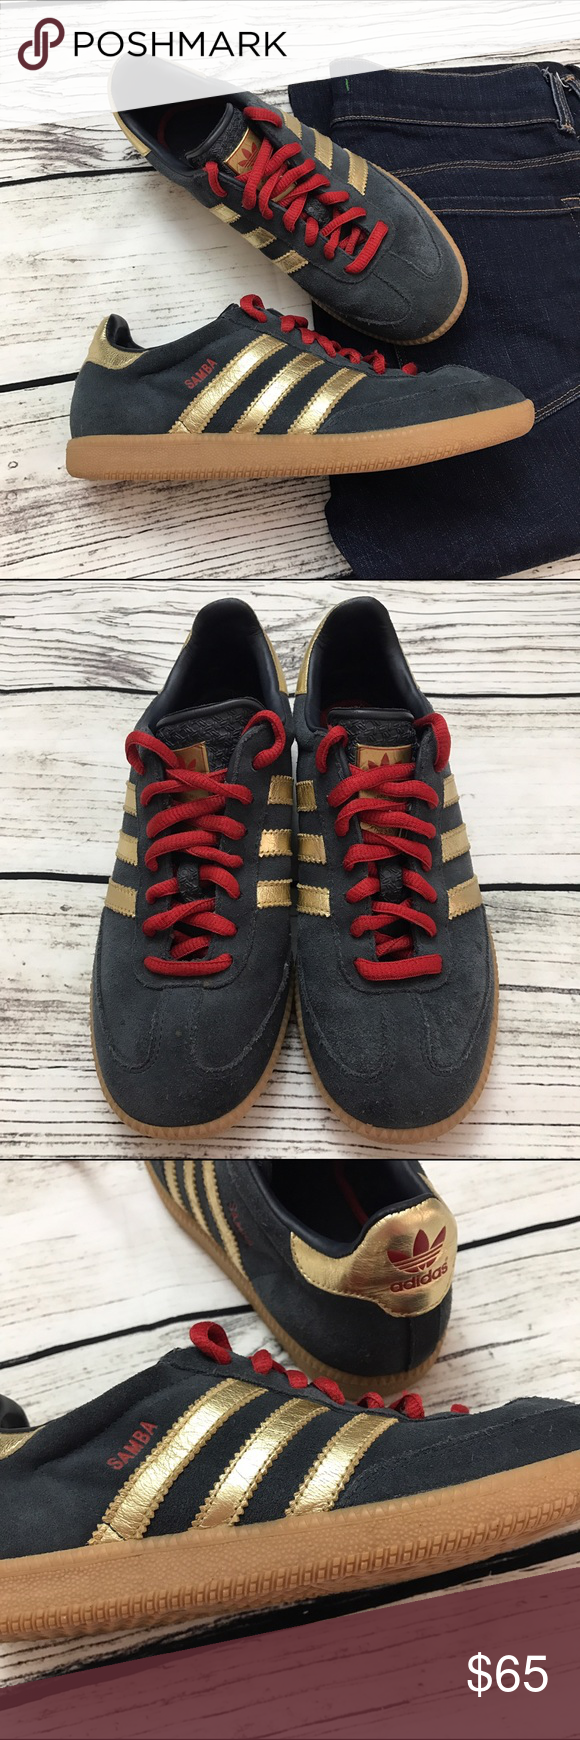 for whole family new release good selling greece adidas samba blue gold 6f6f3 8a250